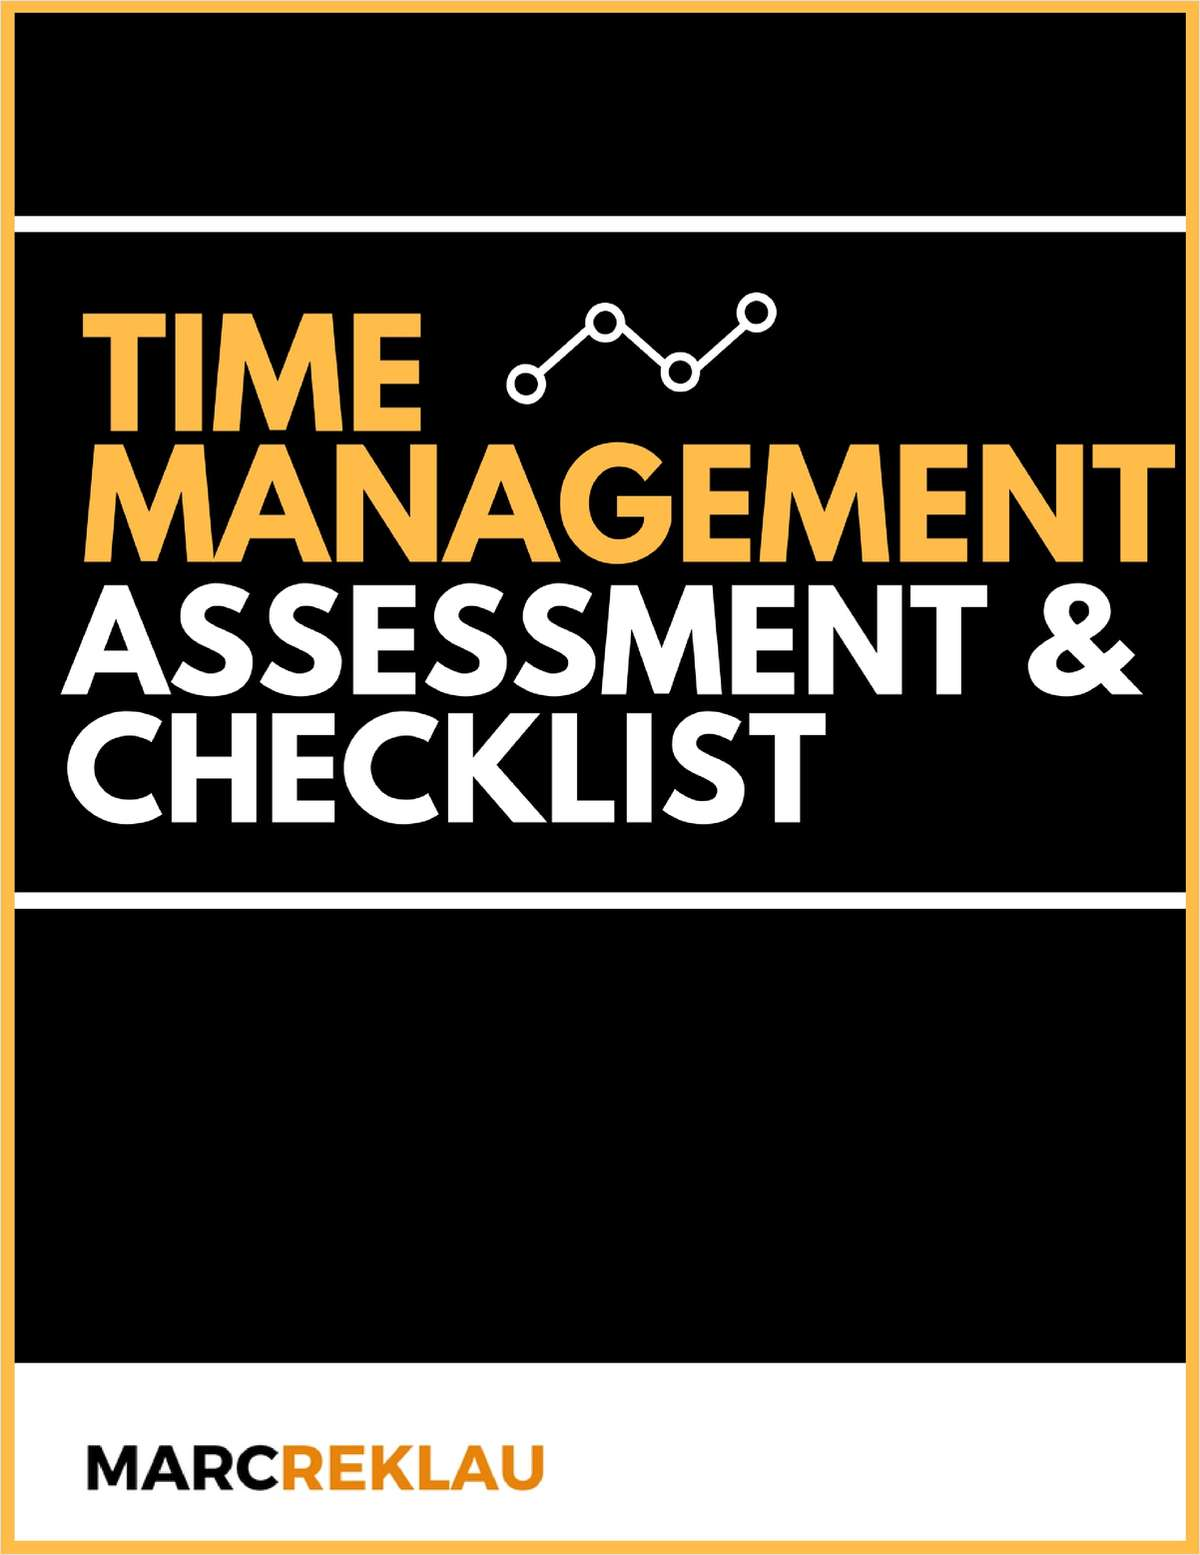 Time Management Assessment & Checklist